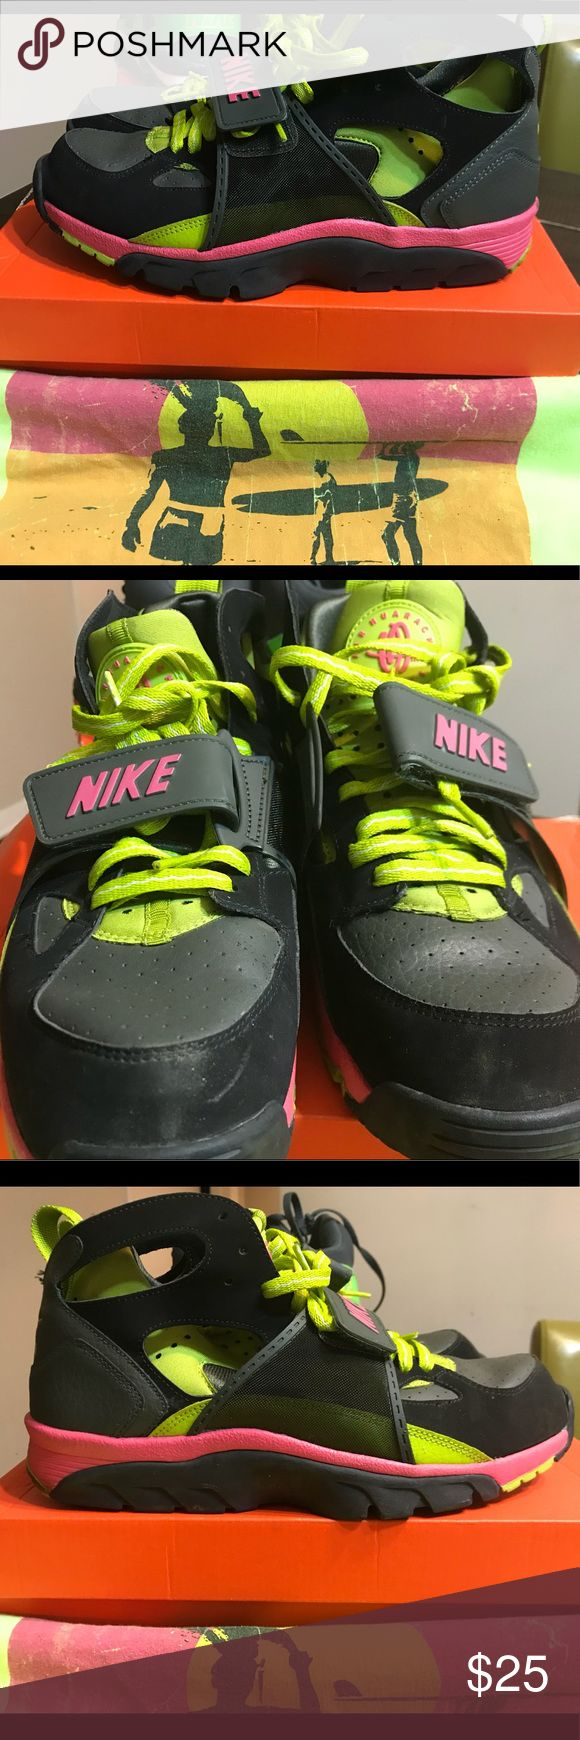 Nike Air trainer huarache men's sz 10 Ok condition, fair for the price still a great sneaker,  rare color wave... Nike Shoes Sneakers